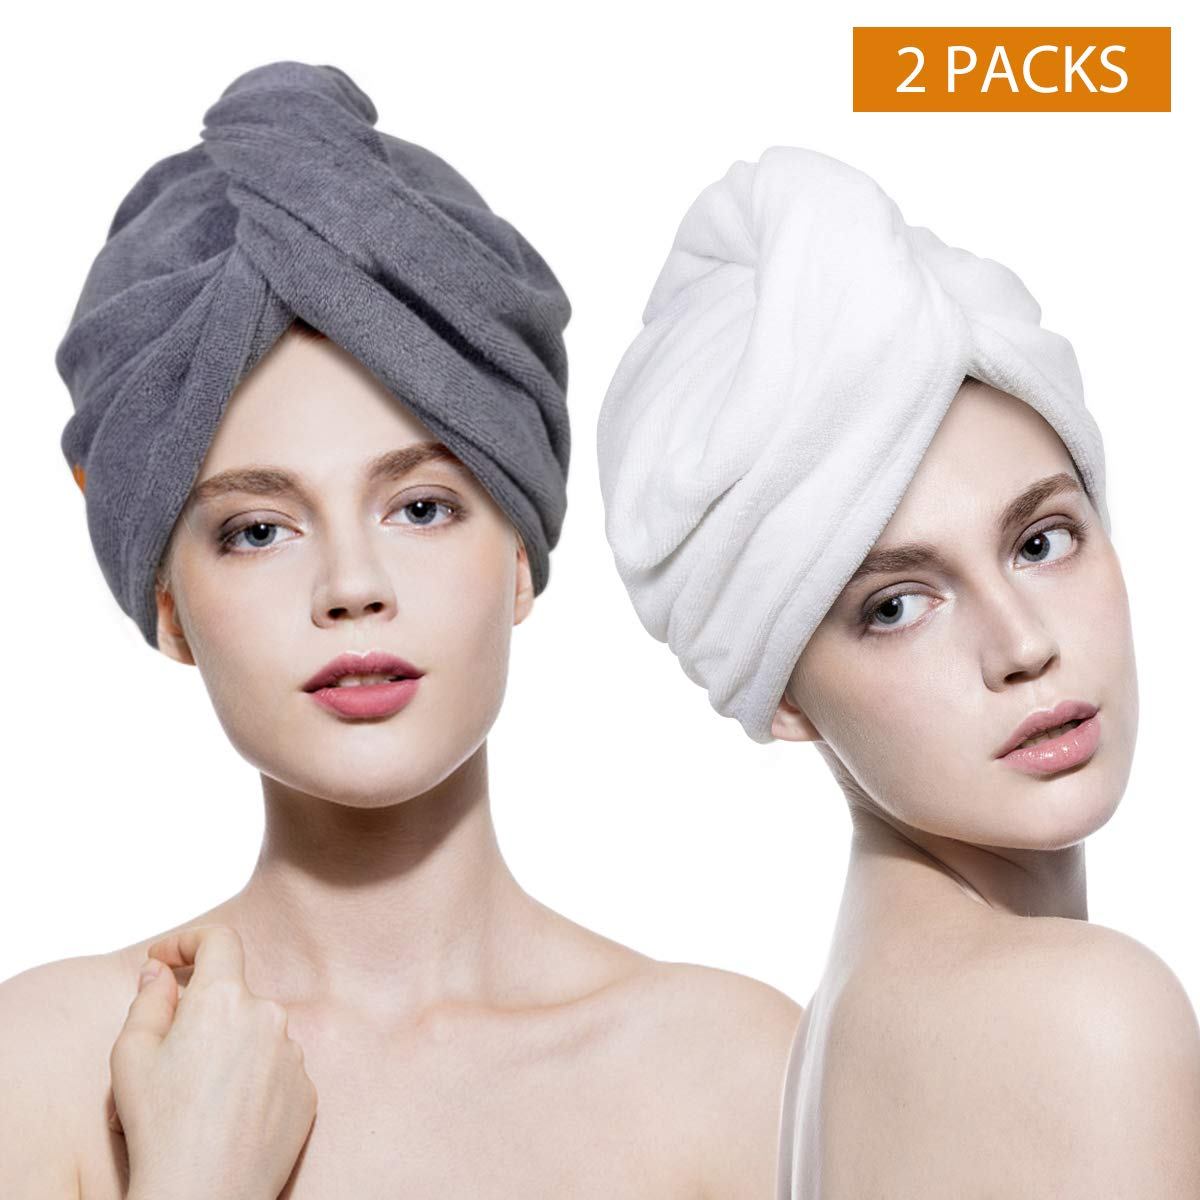 Awesome hair towels